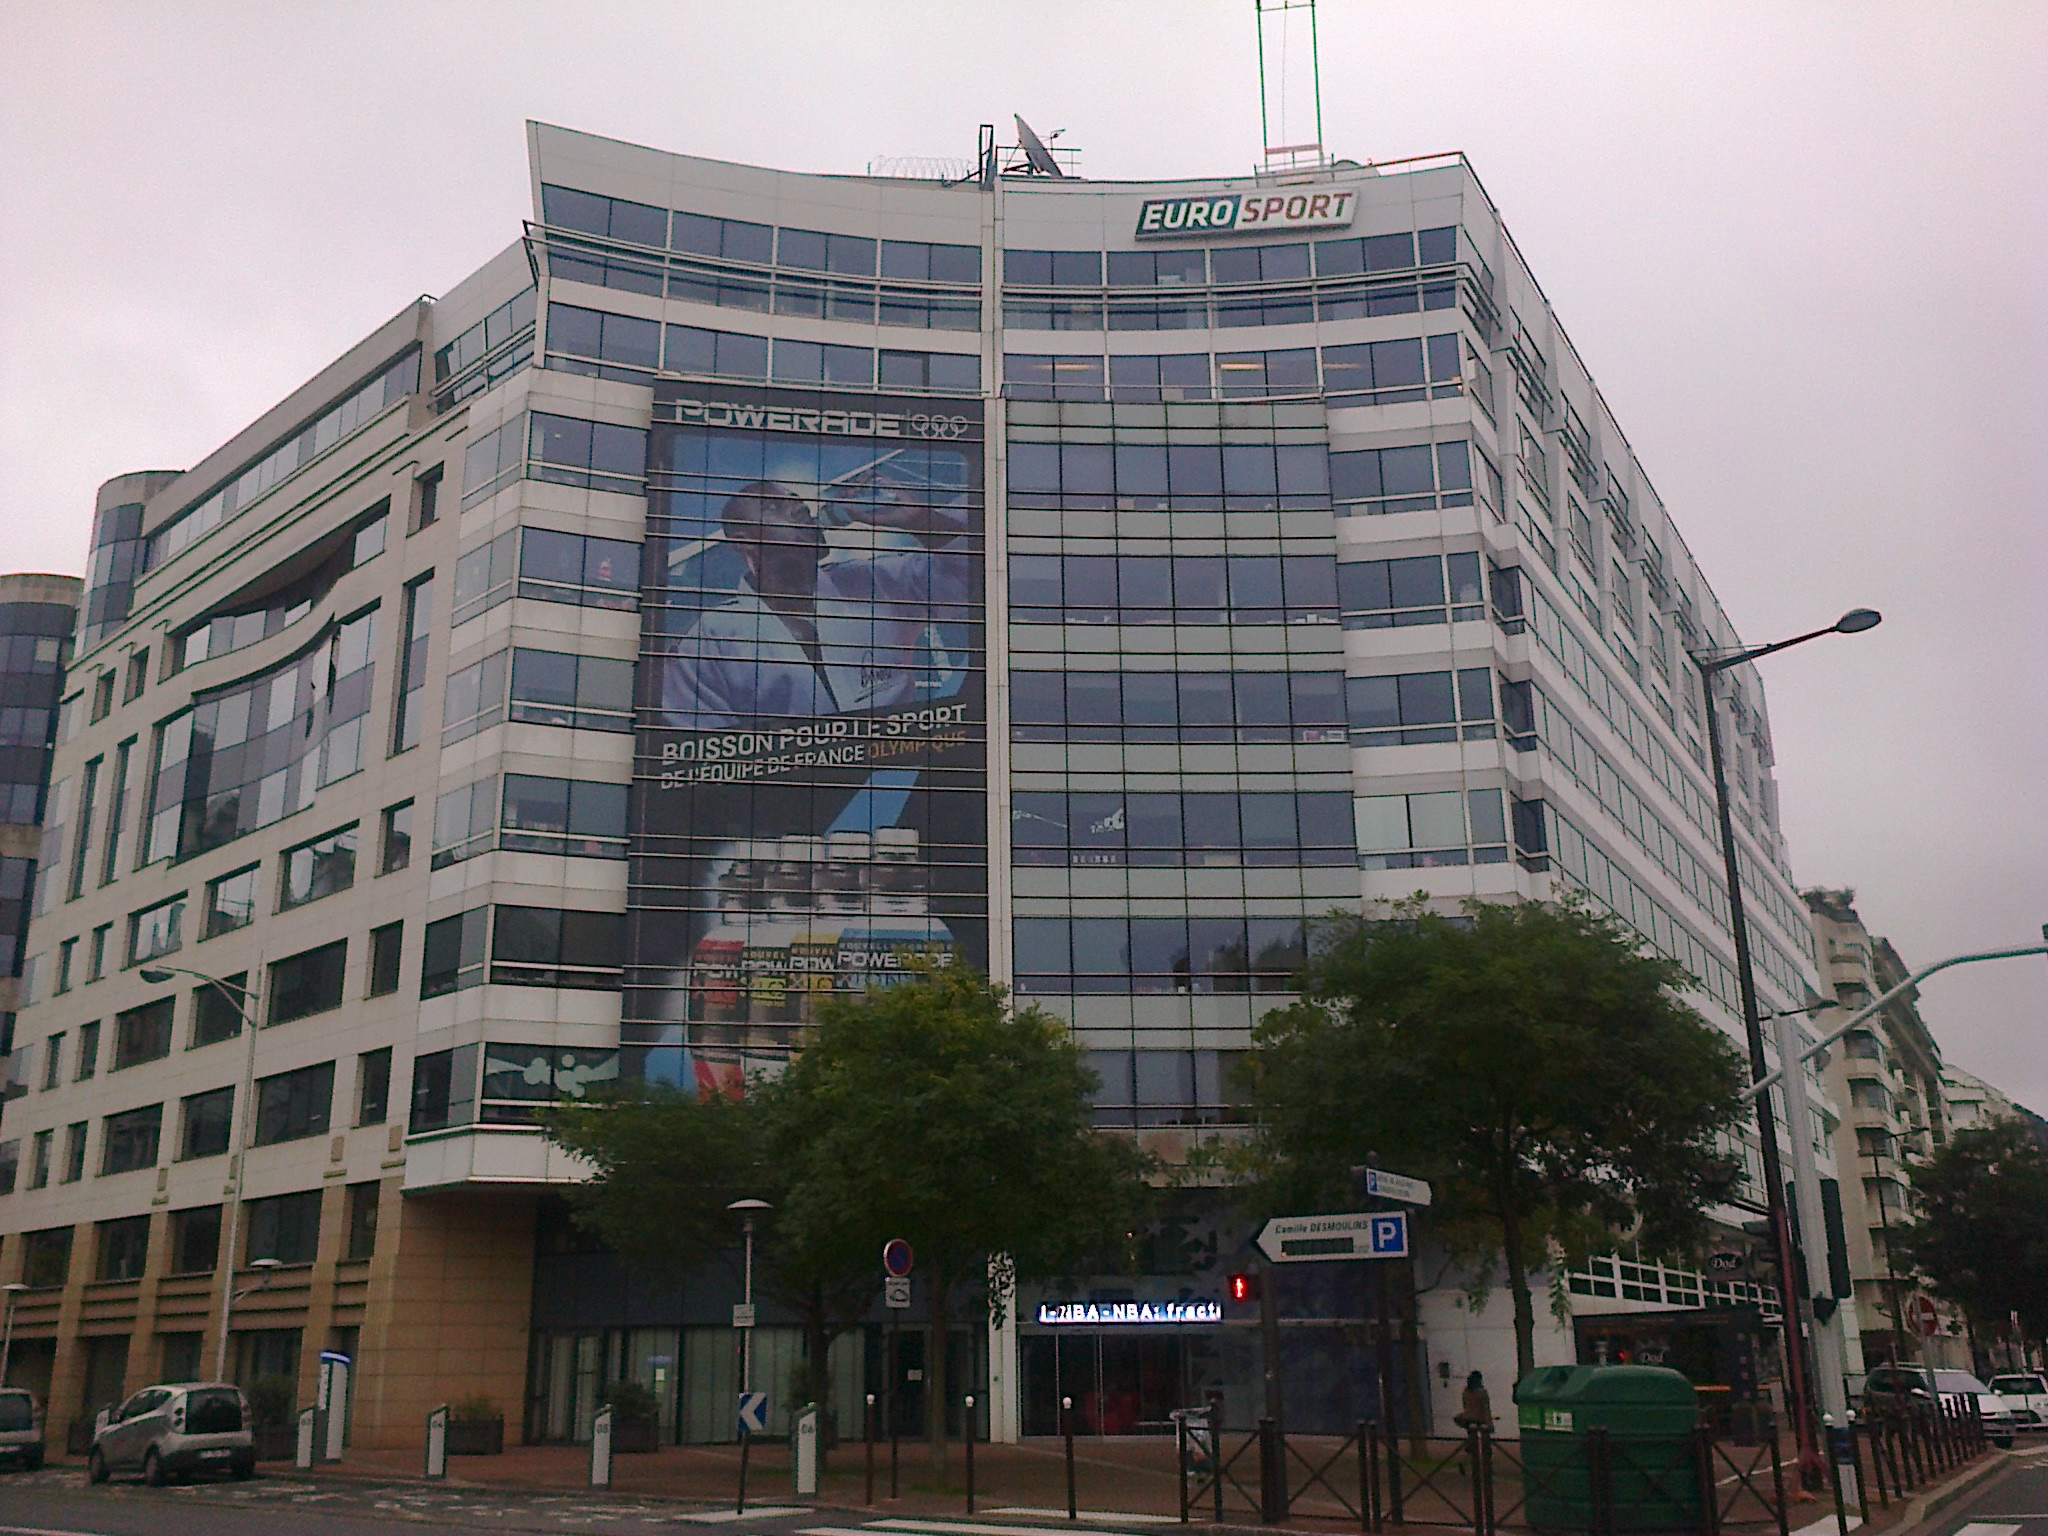 Eurosport's headquarters are now in Issy Les Moulineaux in Paris ©Wikipedia